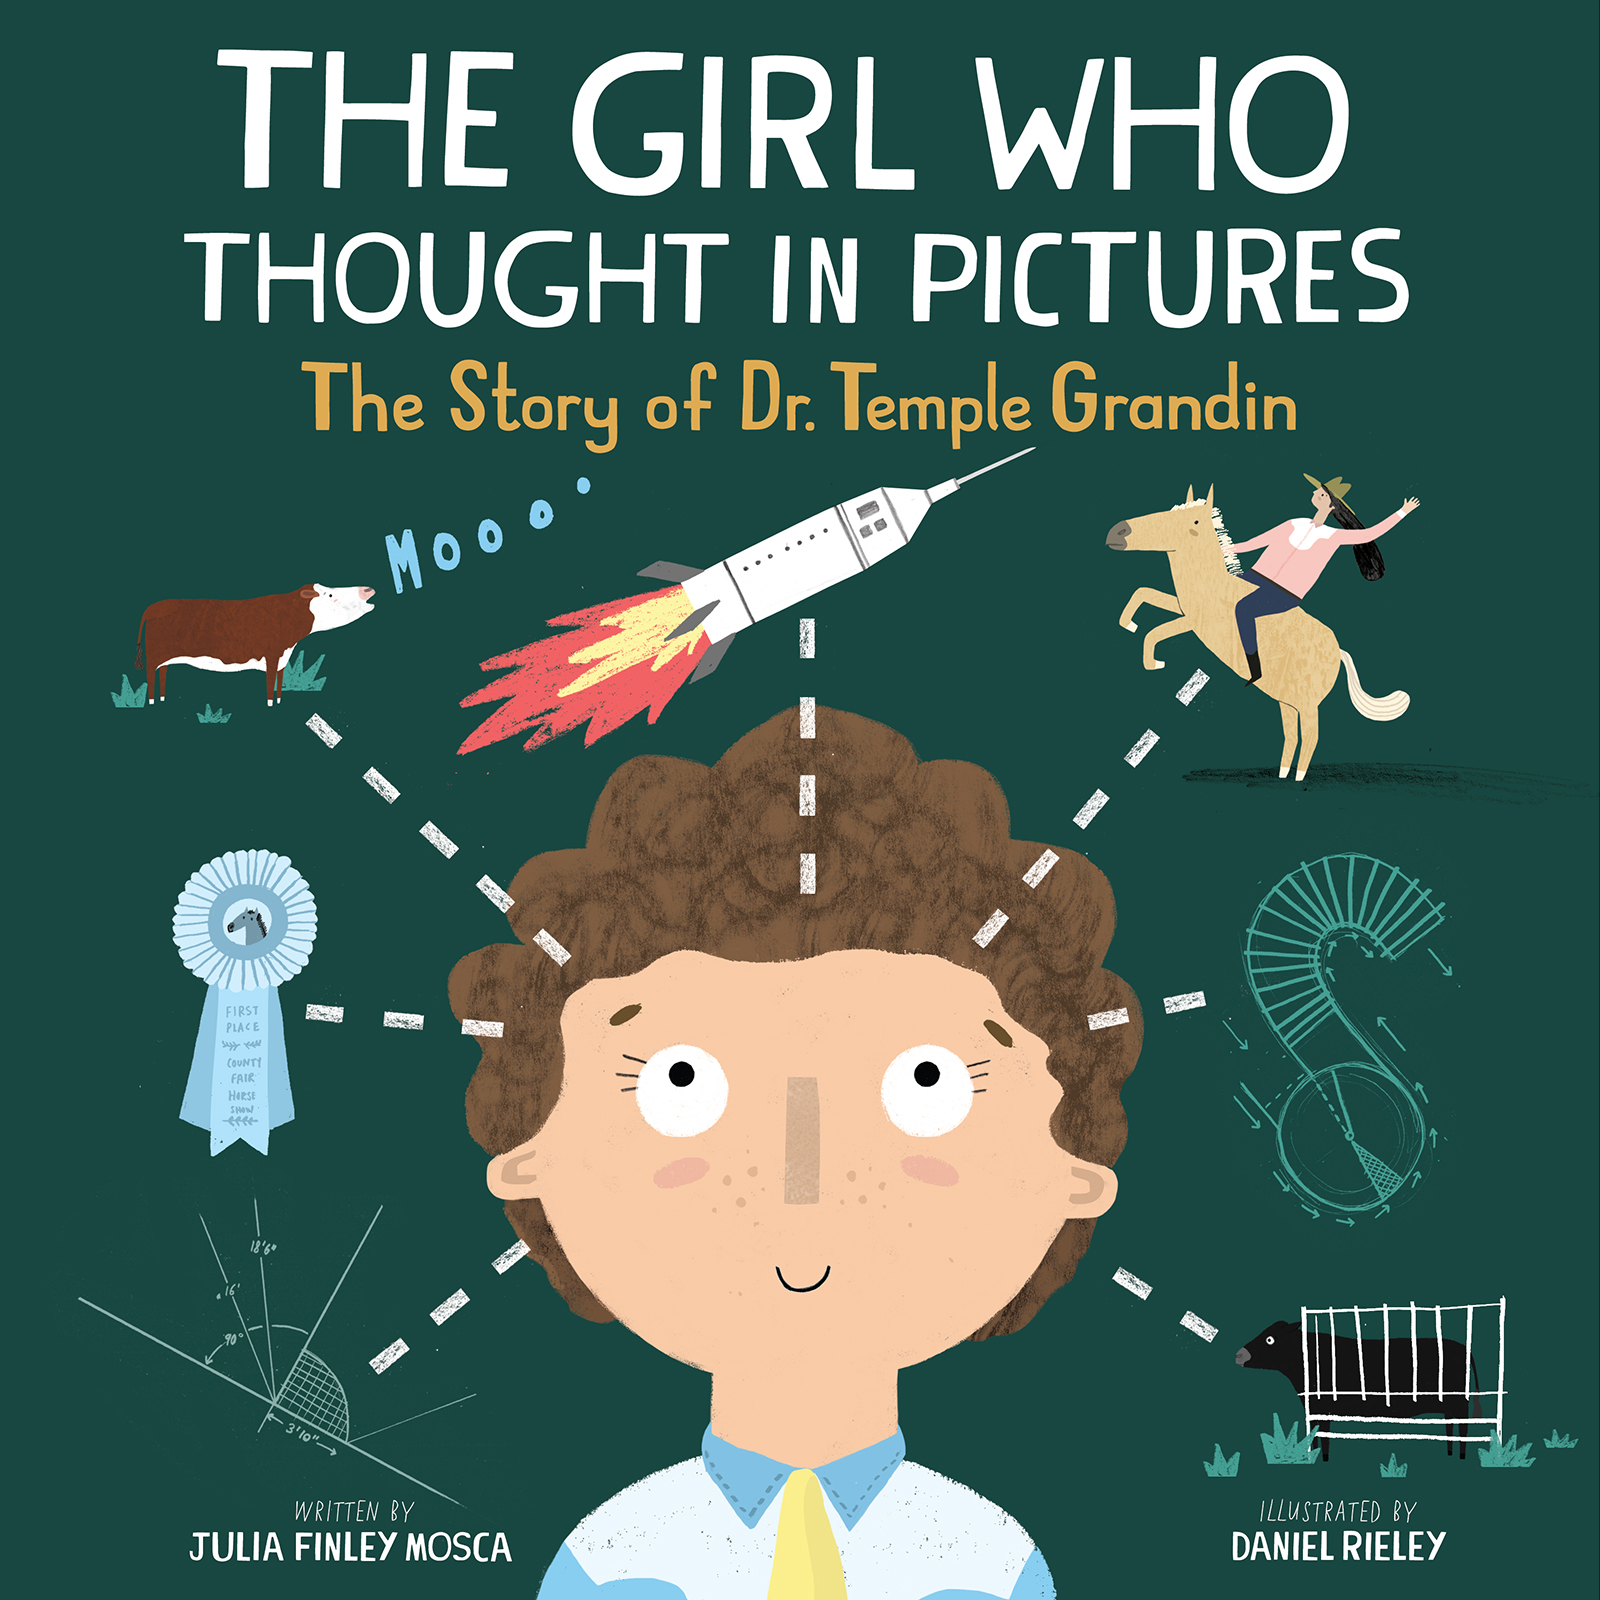 The Girl Who Thought in Pictures, The Story of Dr. Temple Grandin